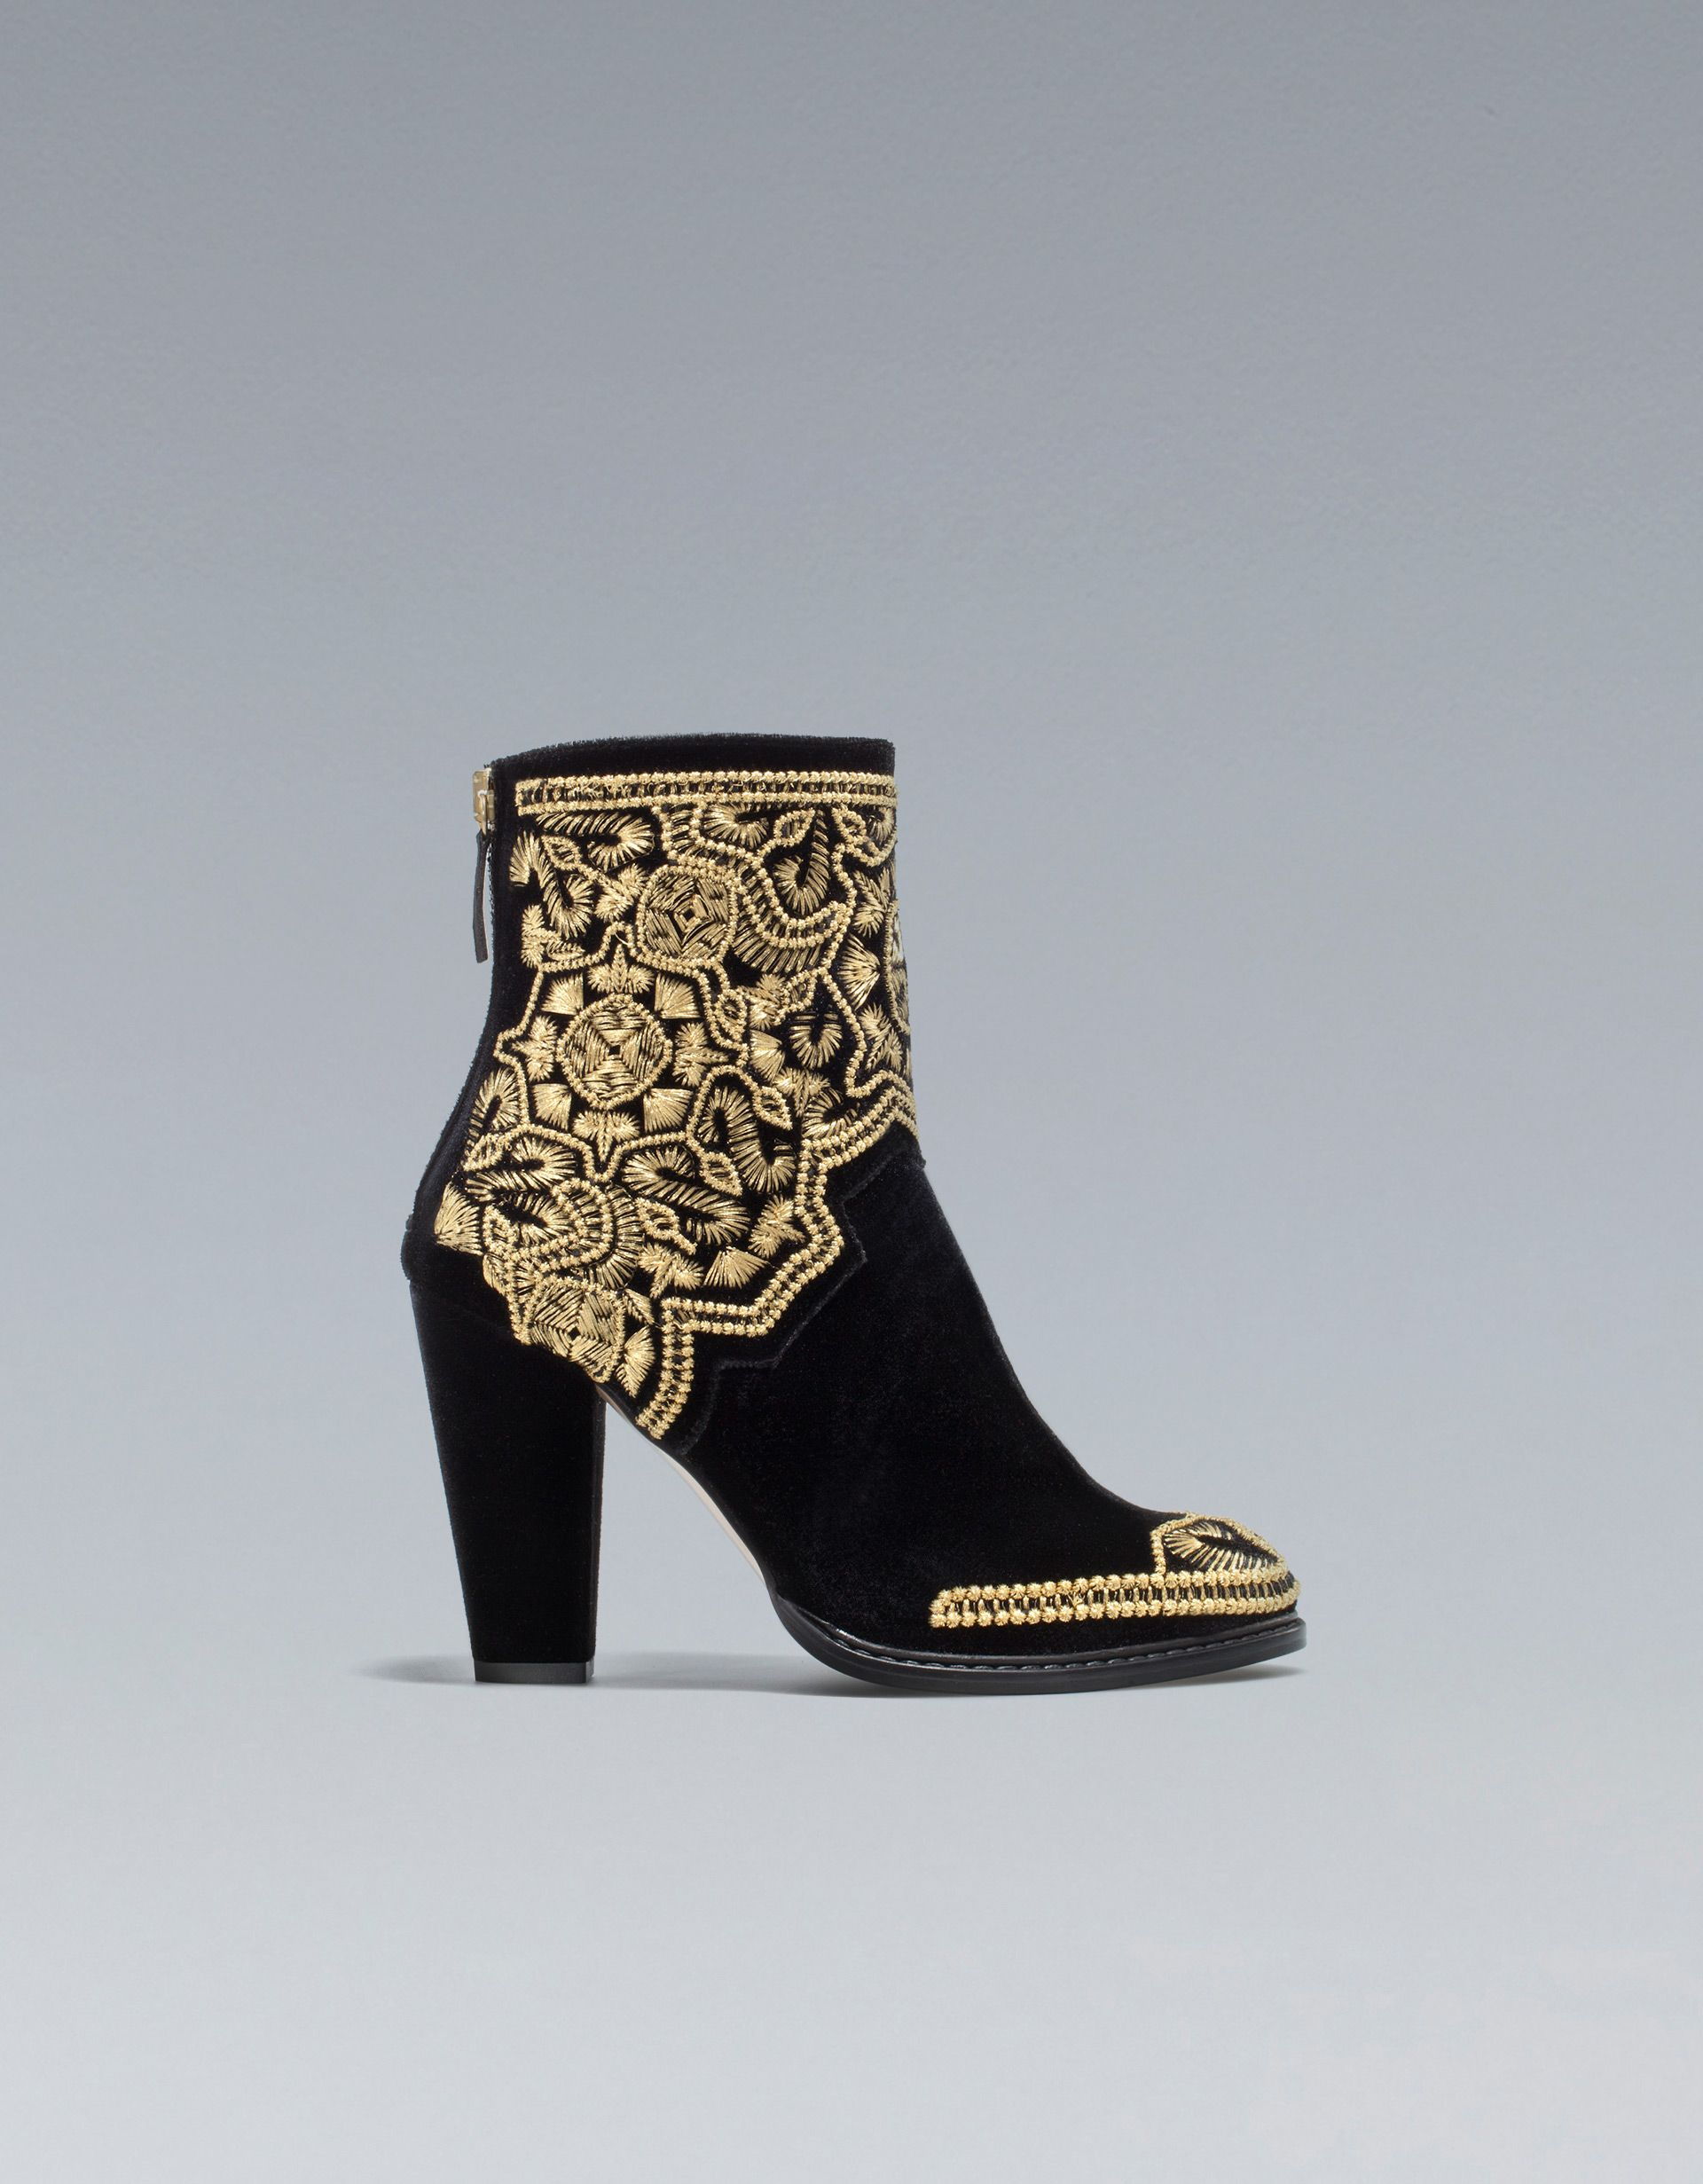 Zara's Gold Embroidered Ankle Boots ($169) are the perfect way to cap off